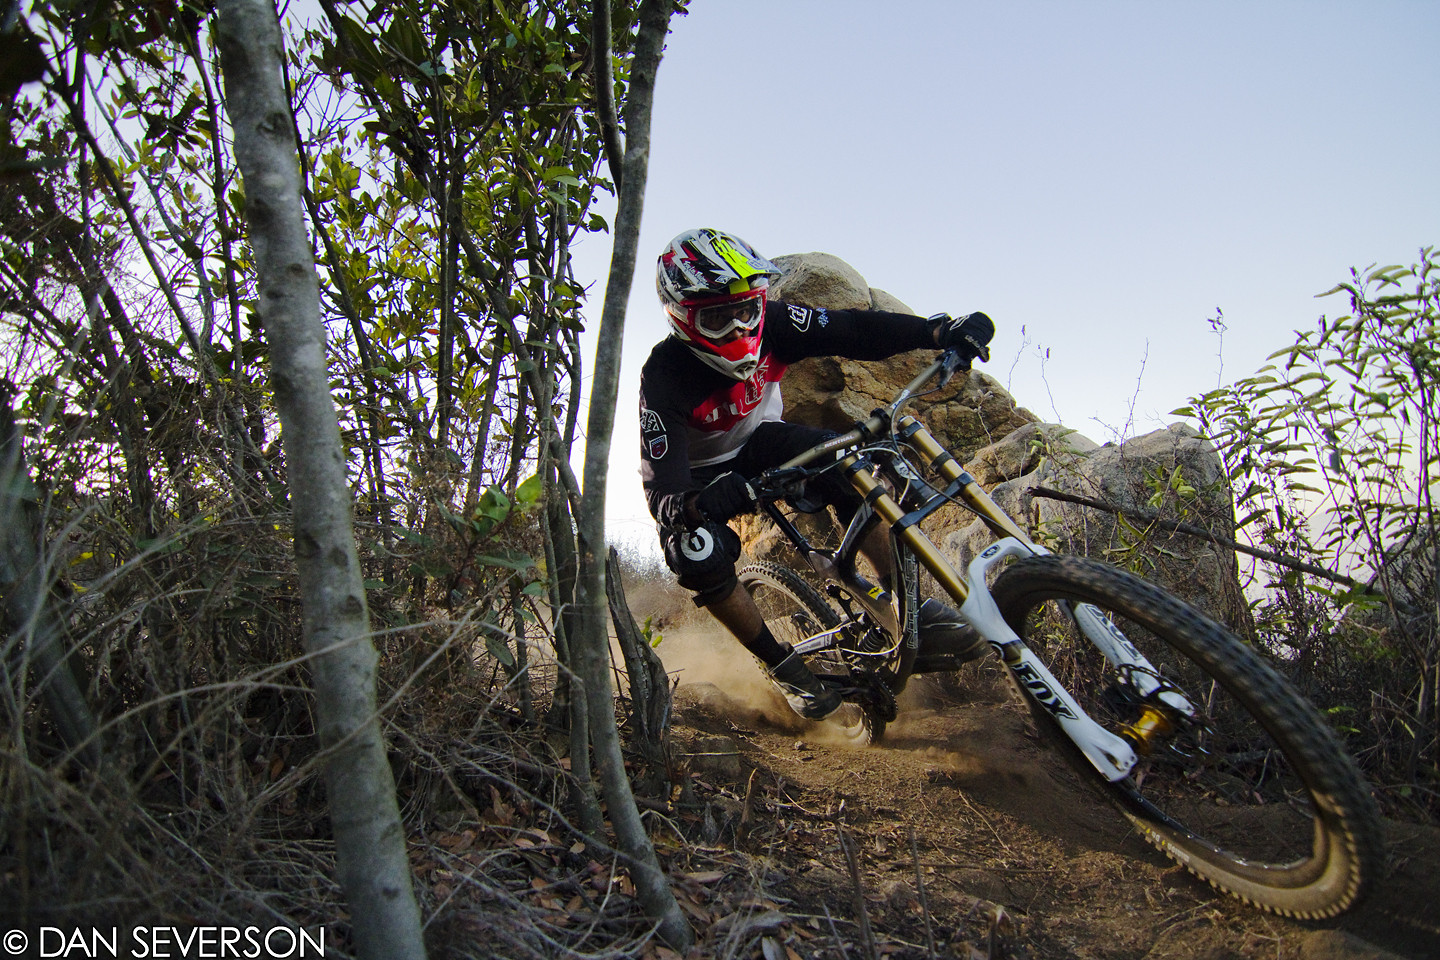 Ensenada DH Extrema 2012 - danseverson photo - Mountain Biking Pictures - Vital MTB